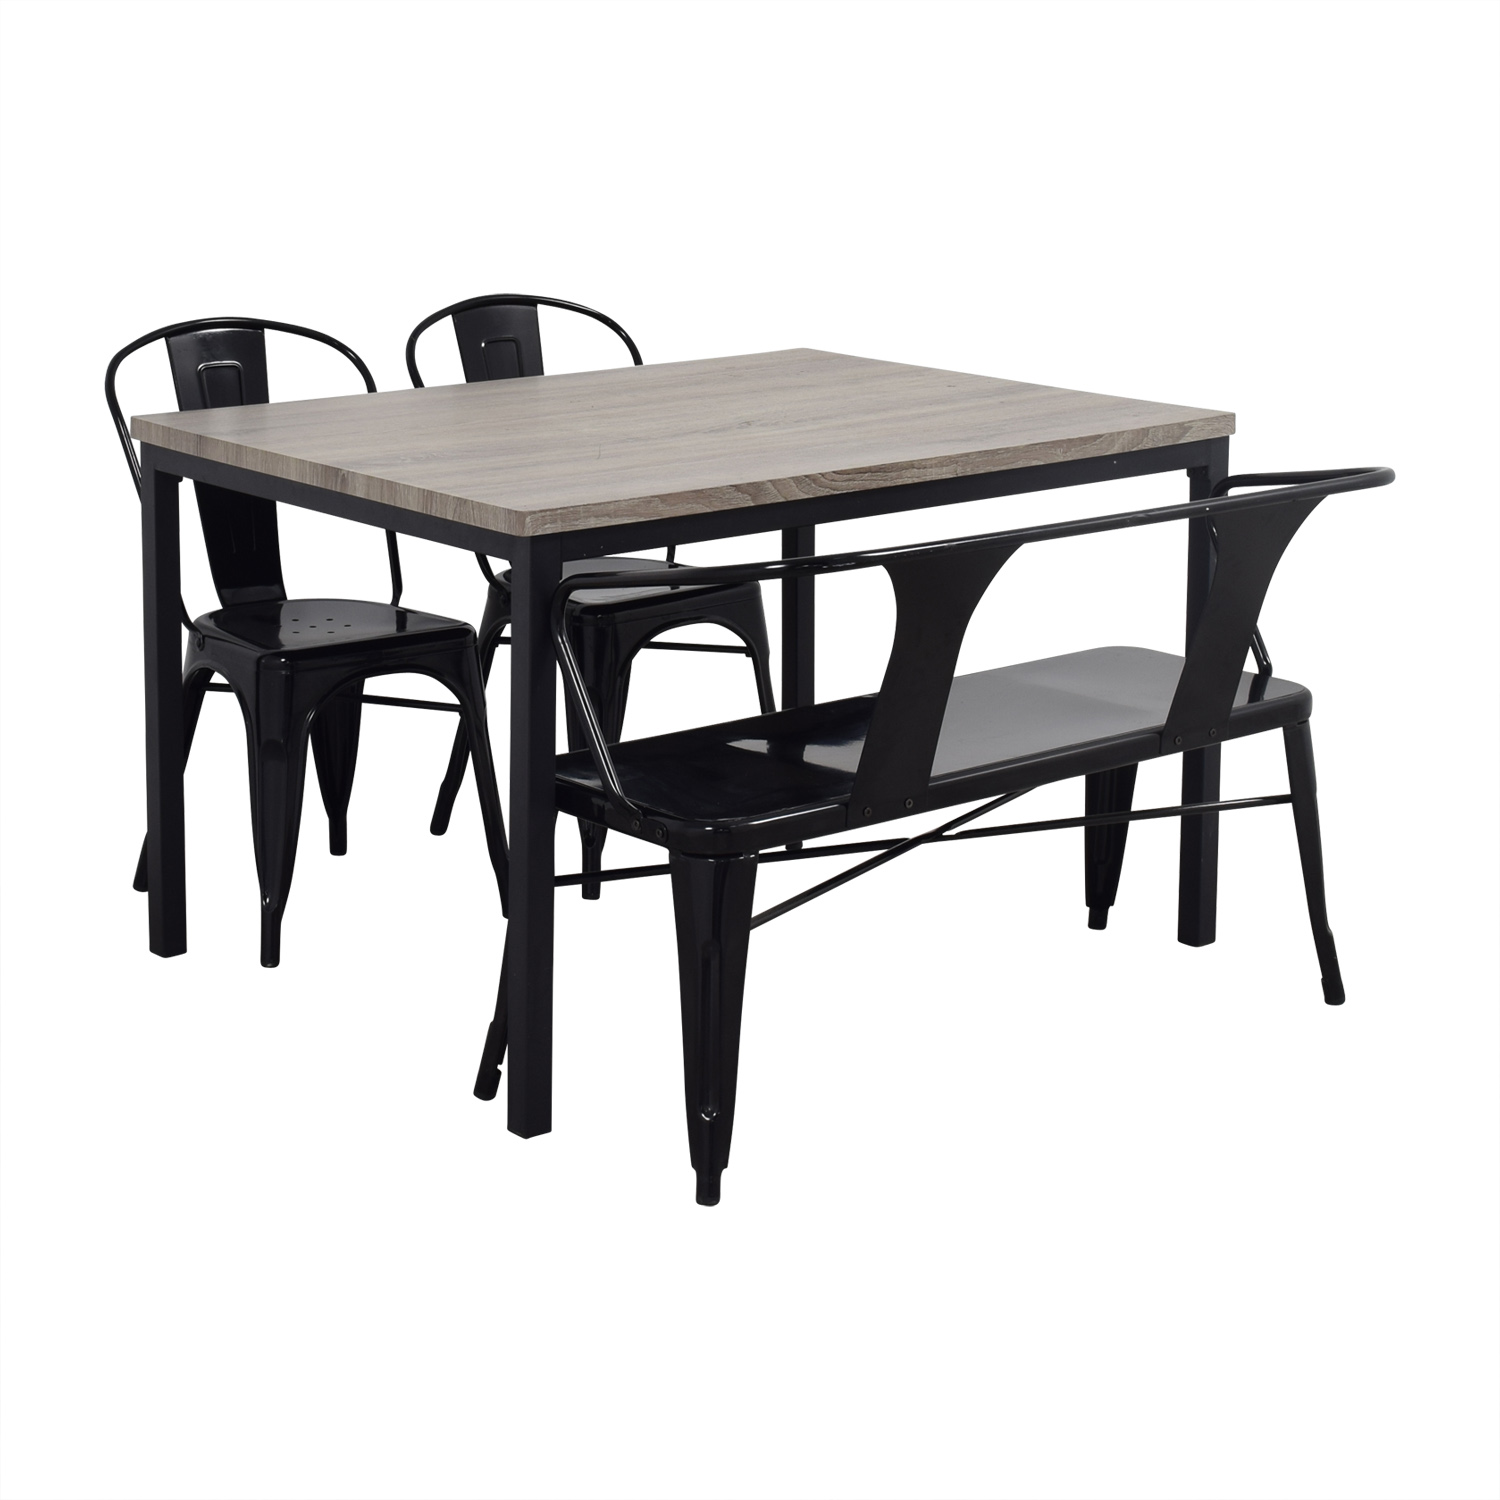 Dining Table With Bench And Chairs 53 Off Grey Dining Table Set With Chairs And Bench Tables